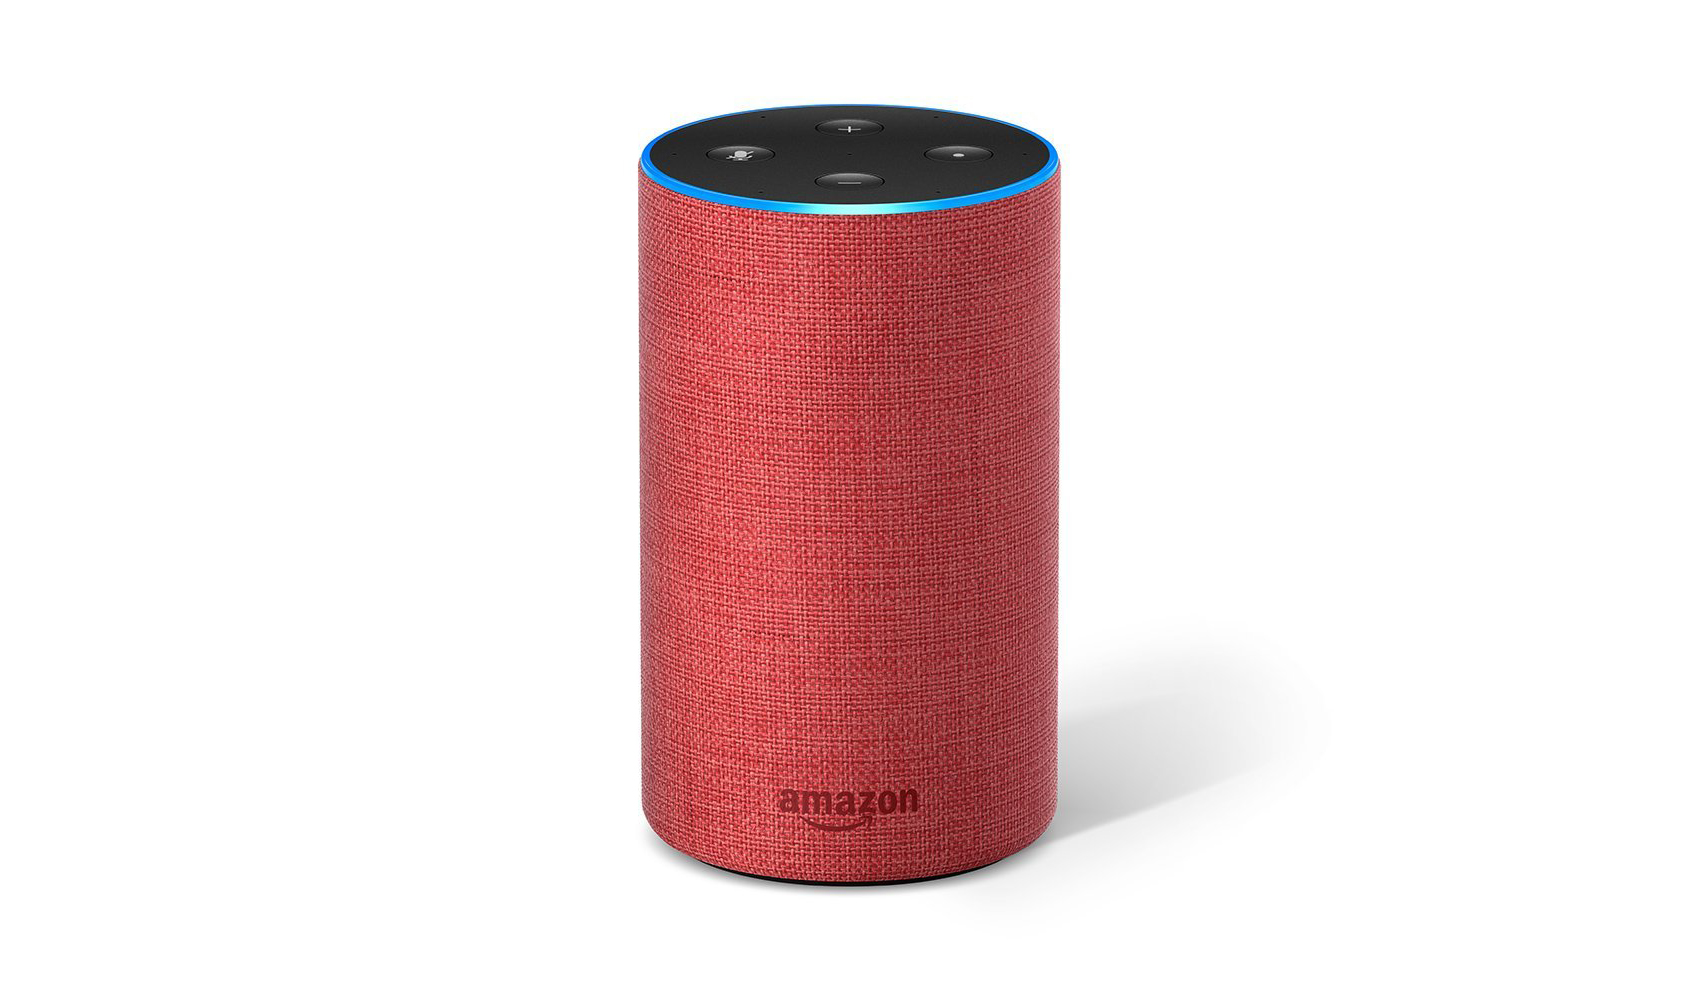 Amazon's all-new Echo goes (RED) for a limited time